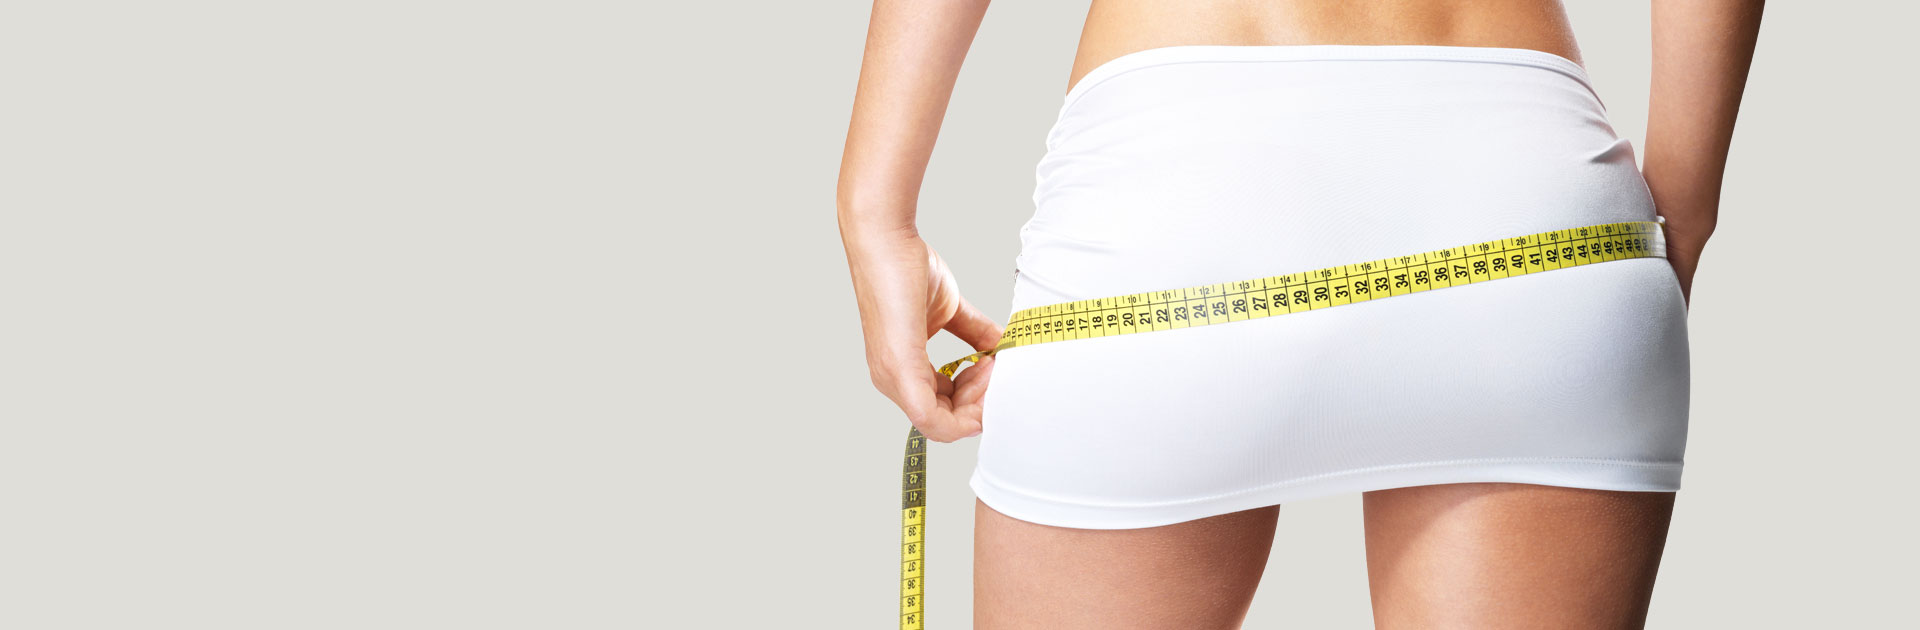 Fat Cellulite treatments